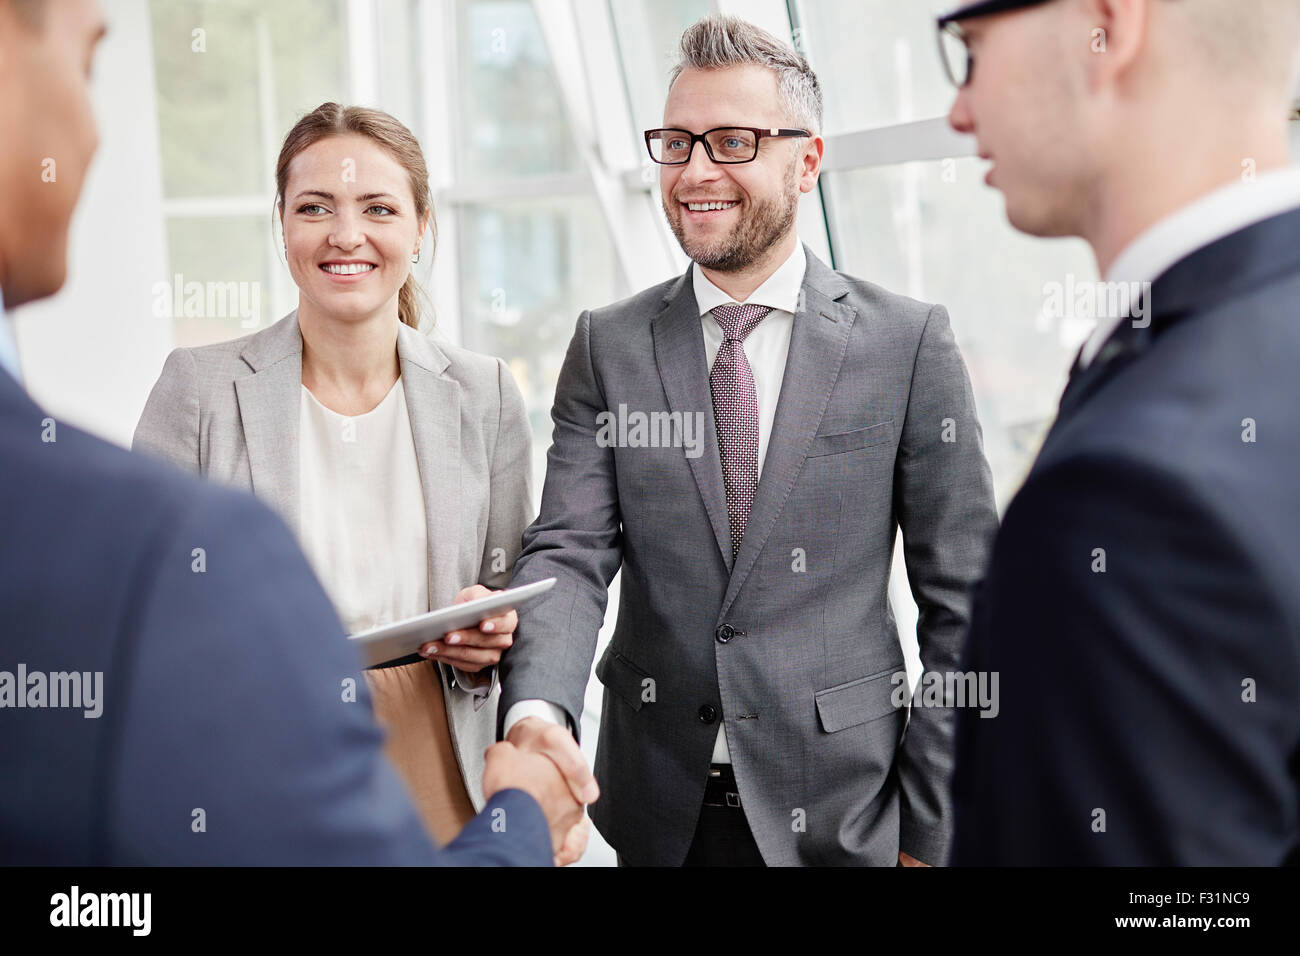 Happy colleagues looking at their business partner while greeting him - Stock Image